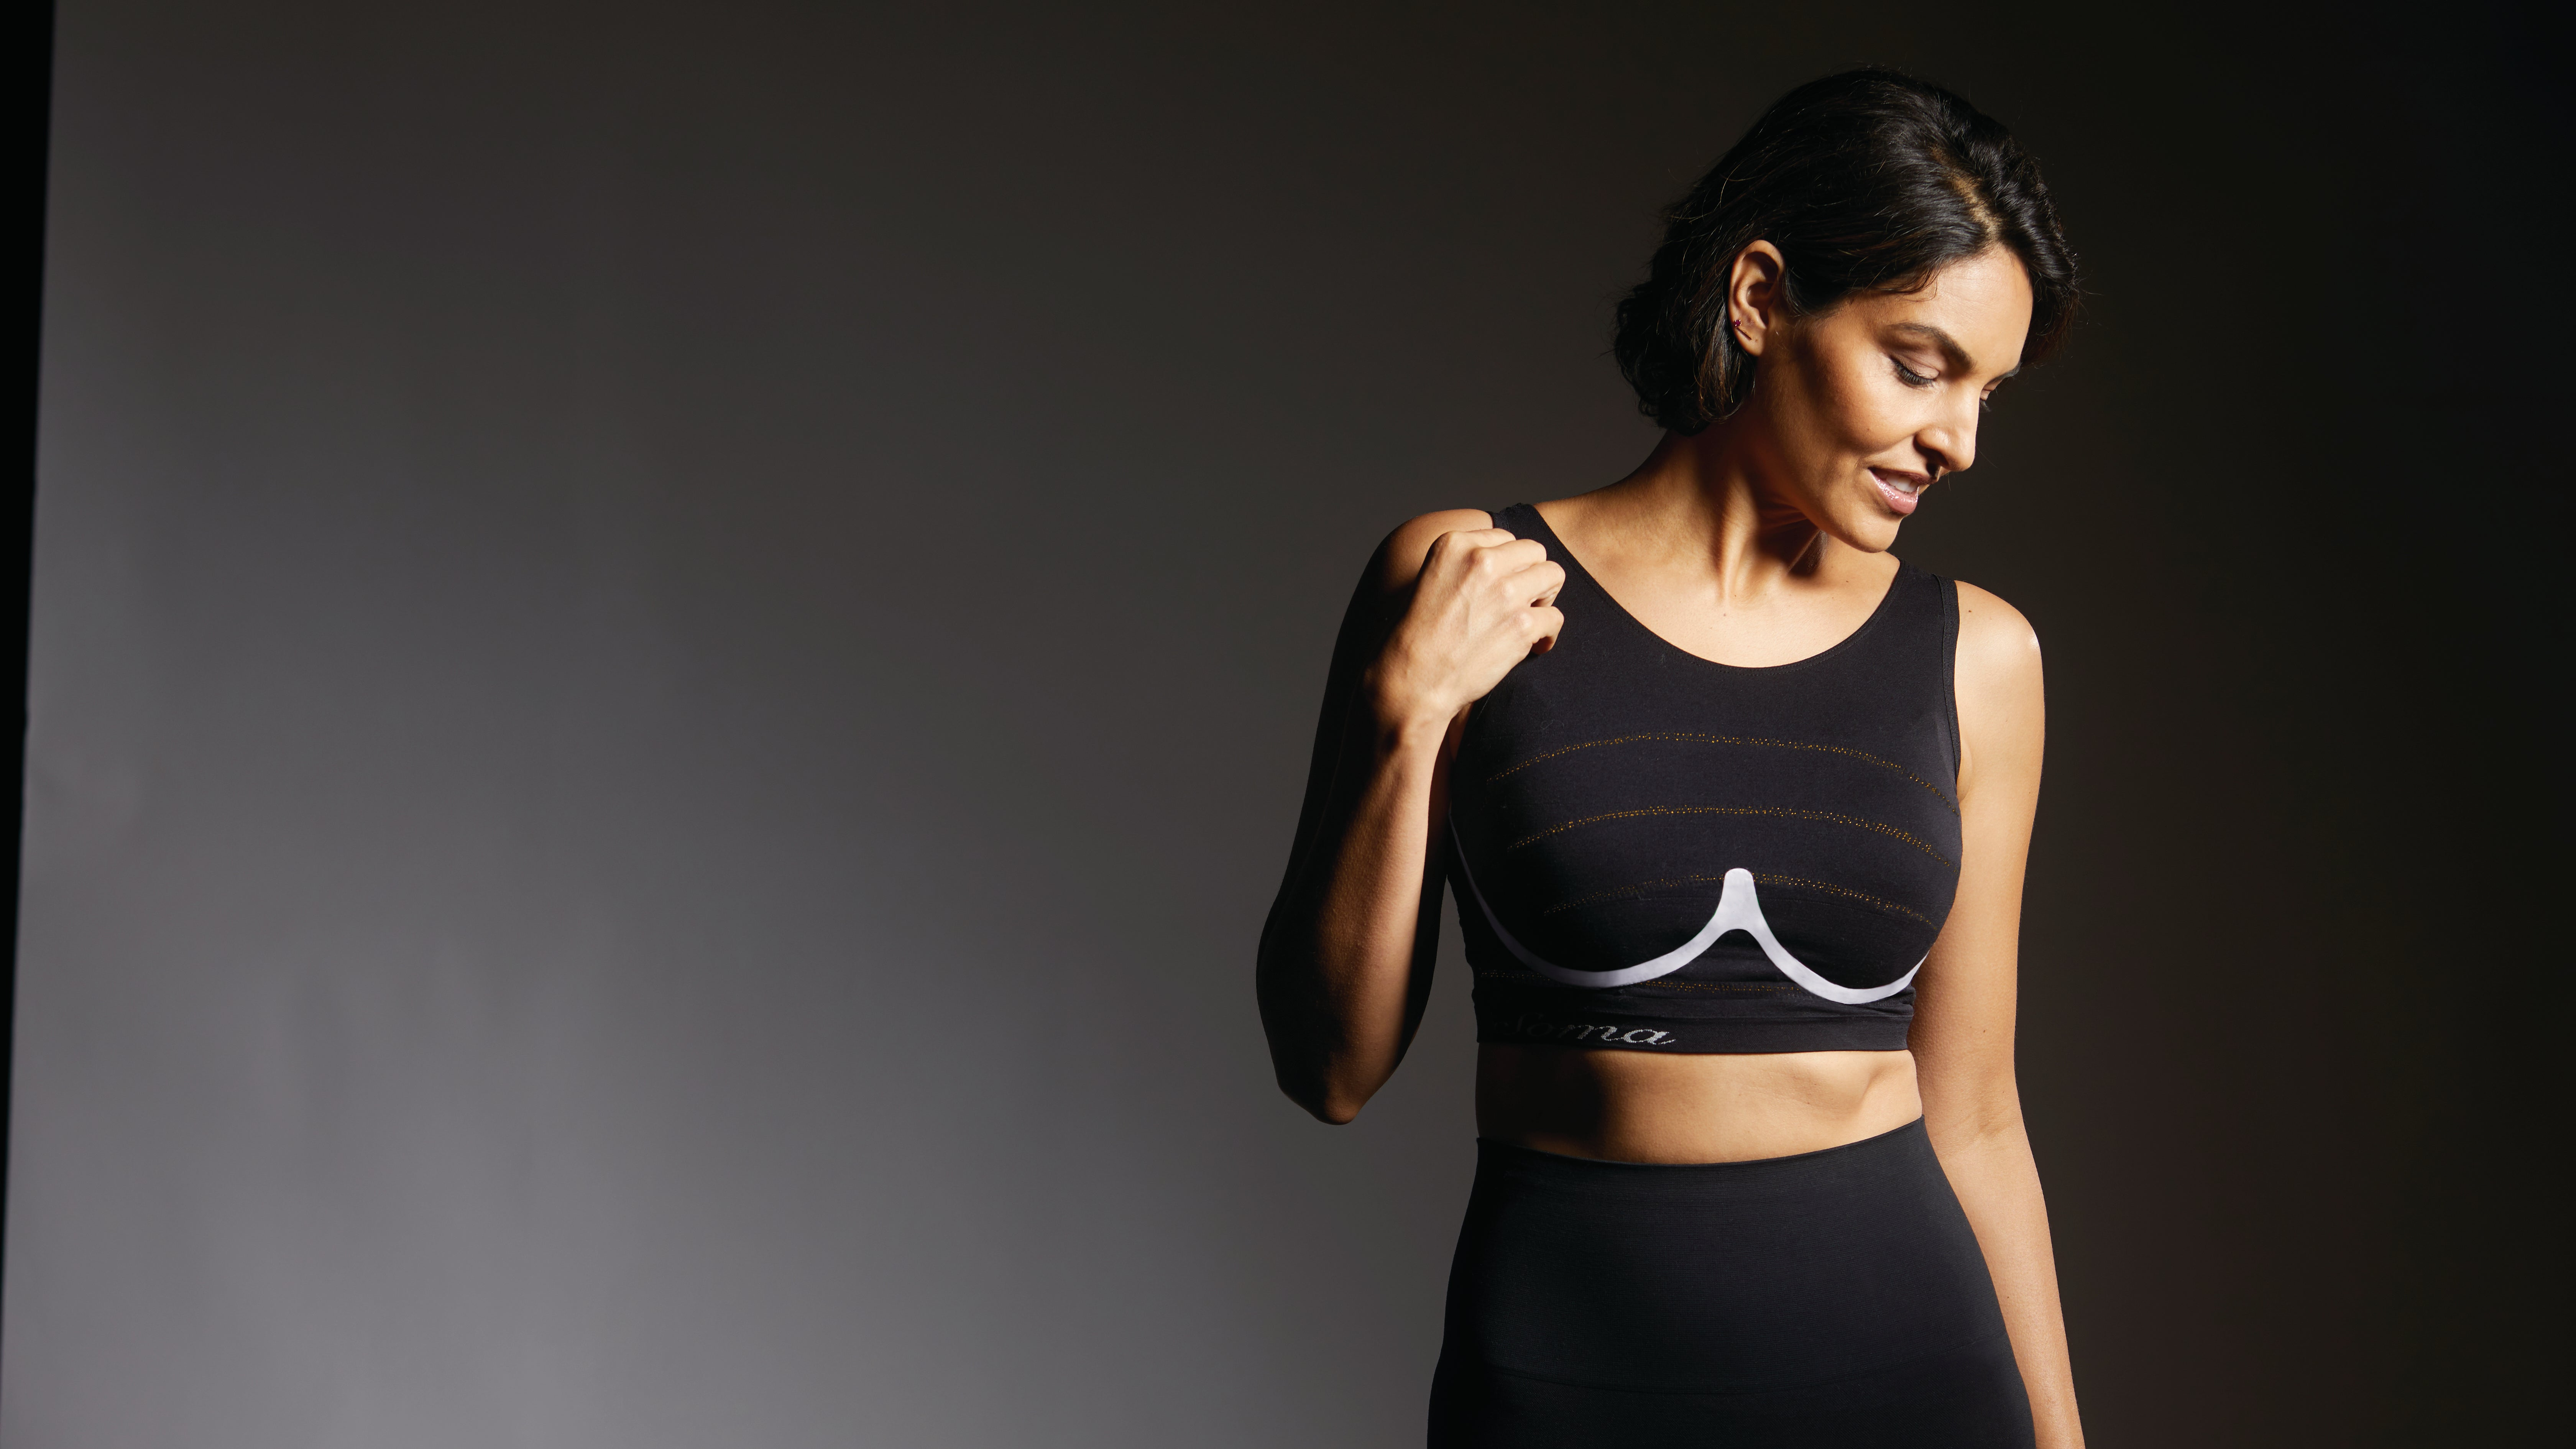 This Smart Bra Measures Your Bust So You Finally Buy The Right Size